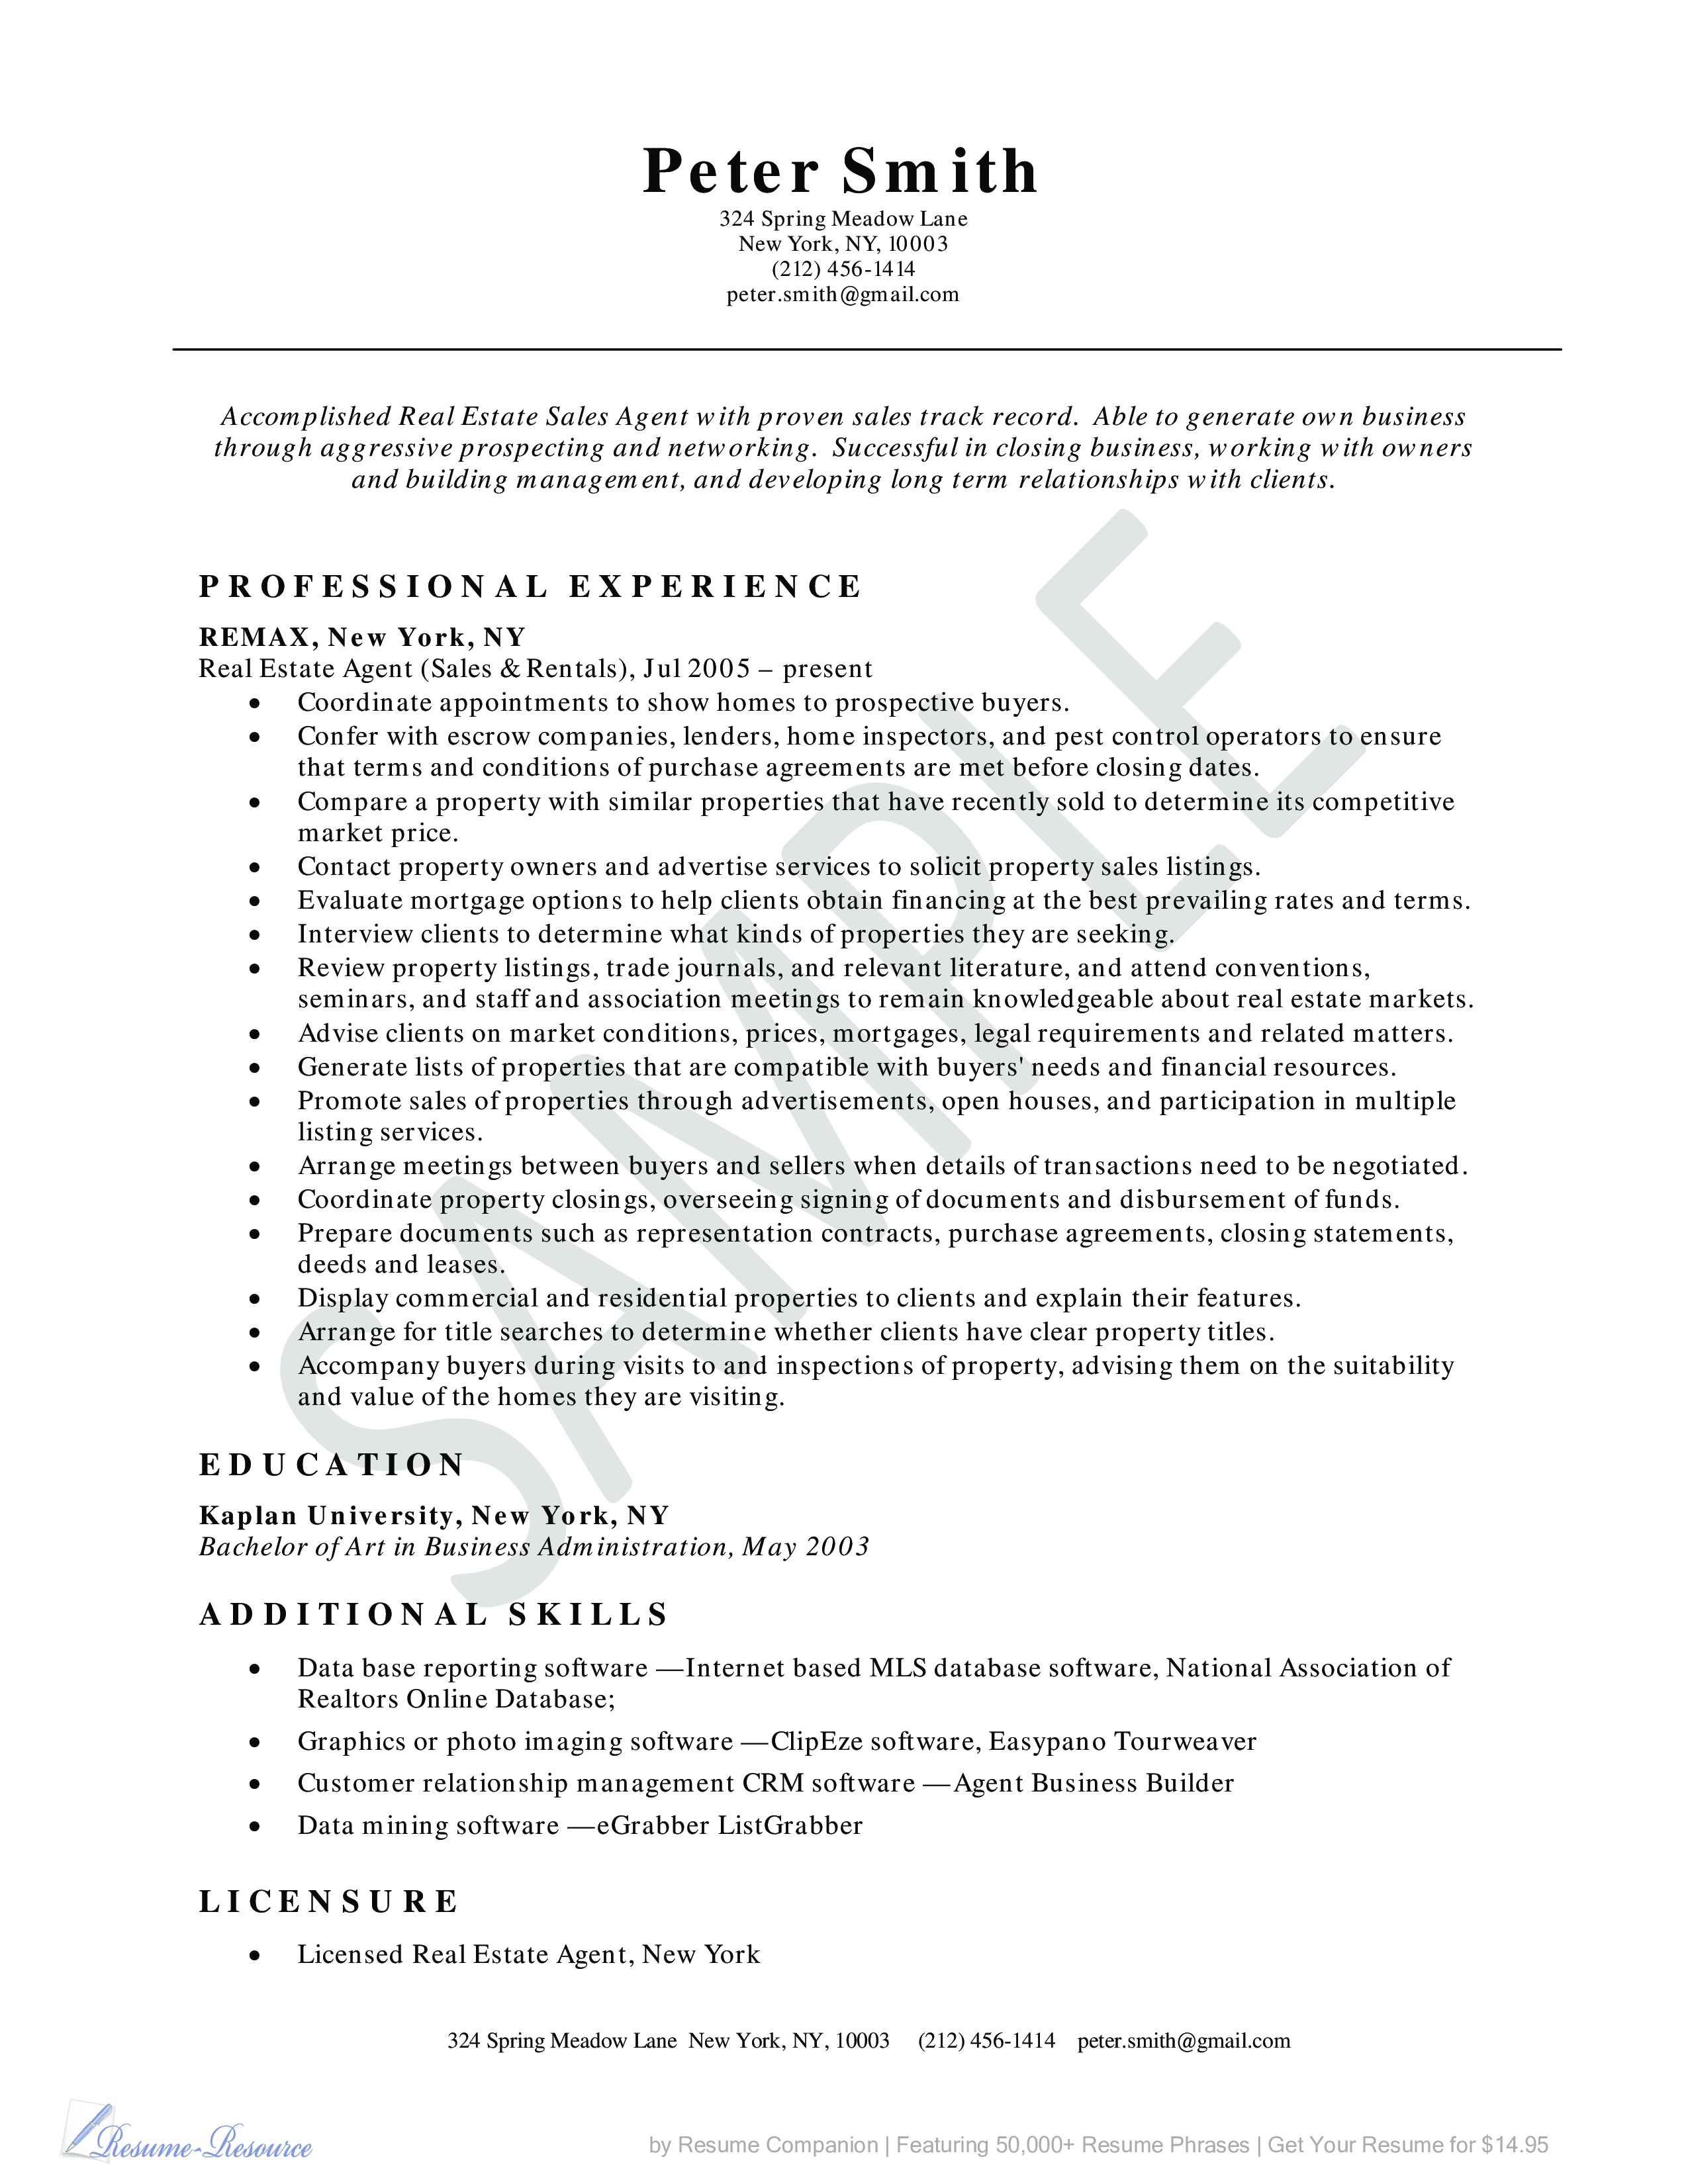 Real Estate Agent Resume Main Image